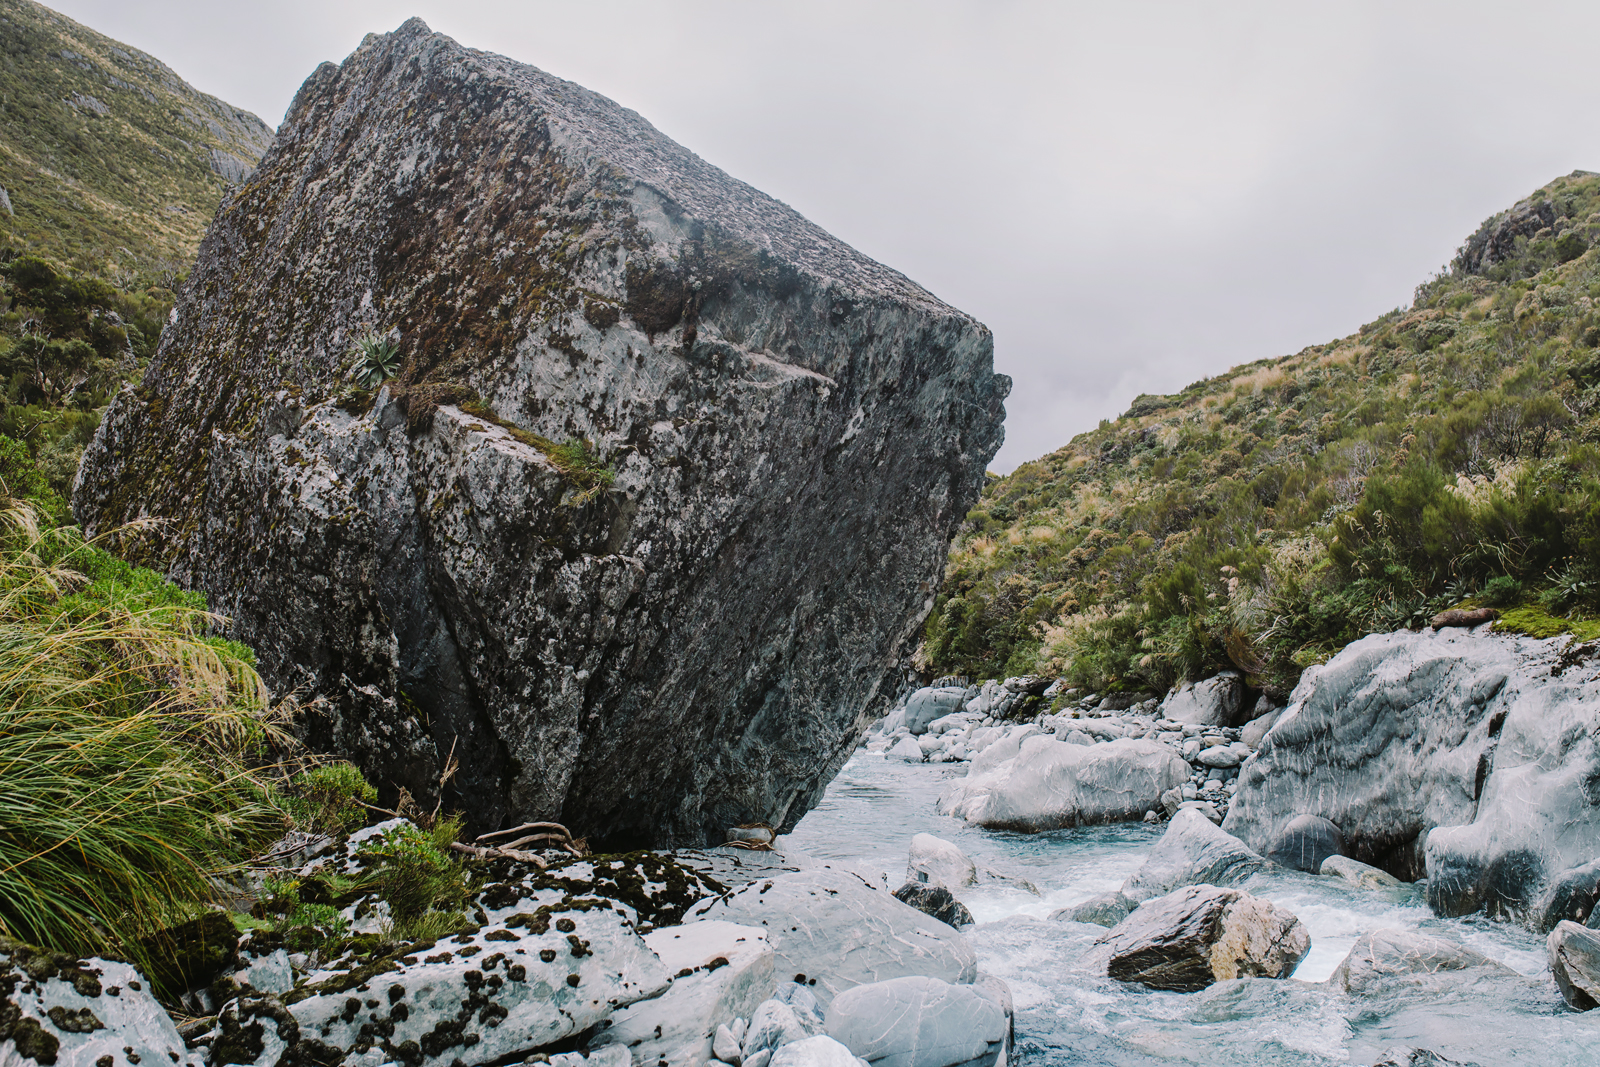 Your classic, house-sized Hokitika River boulder